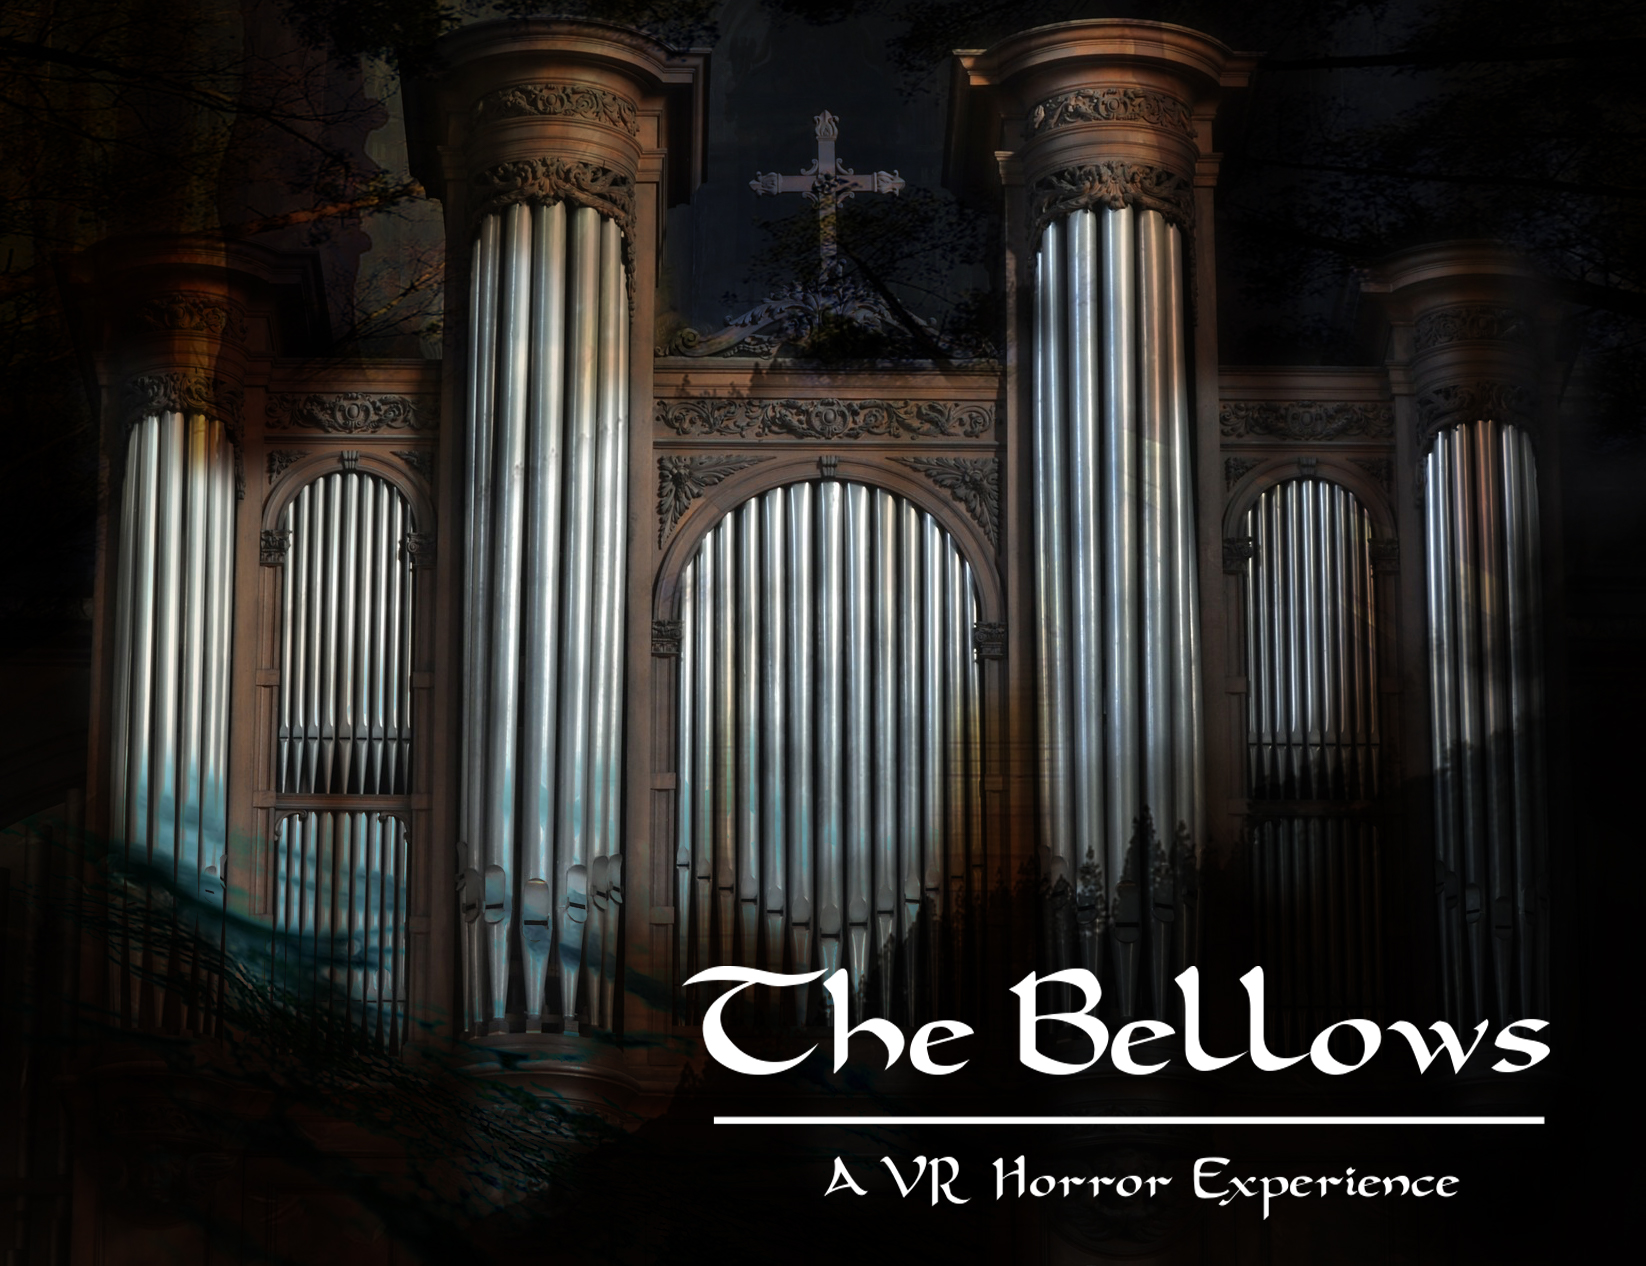 The Bellows Image